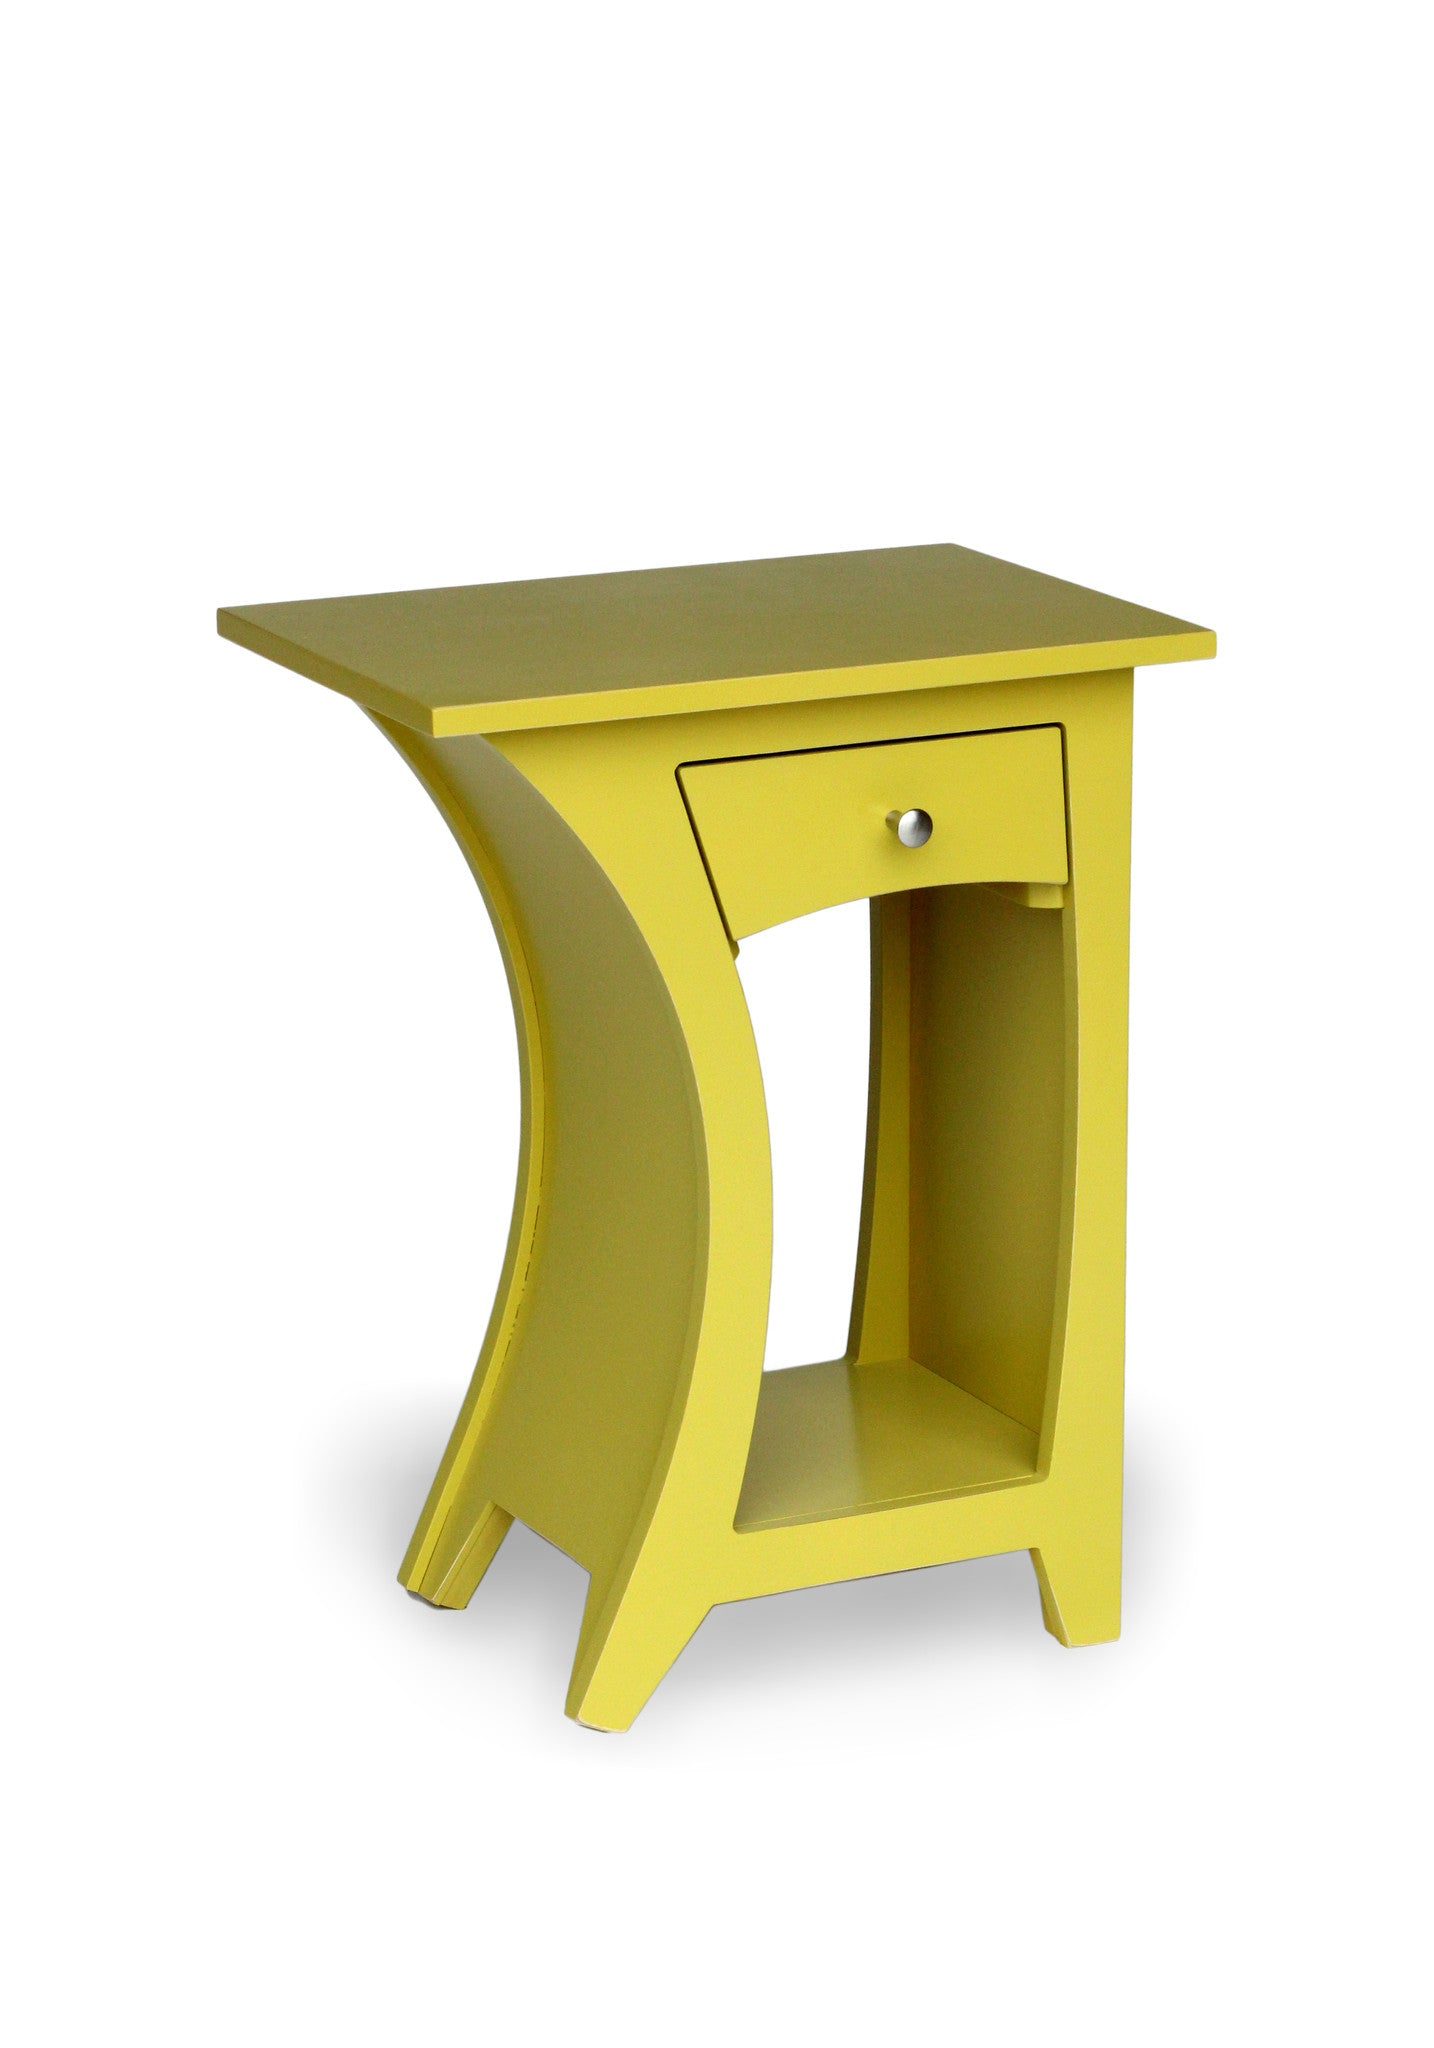 How to dust furniture - Curved Side Table In Chartreuse Paint